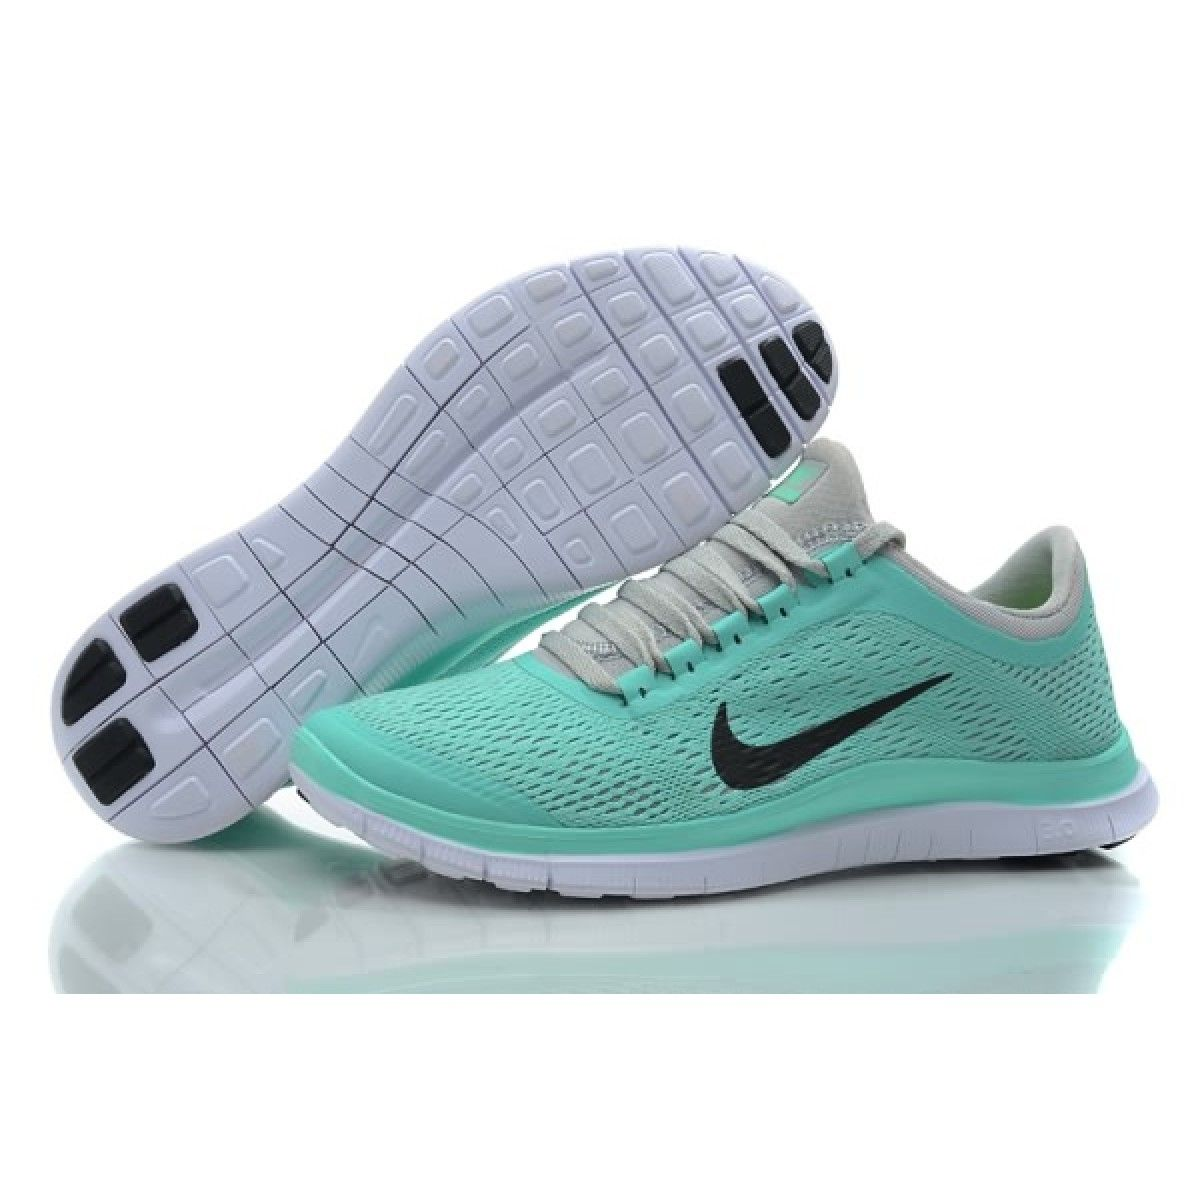 814f0545dc81 Nike Free 3.0 V5 Women's Running shoes Crystal Mint for sale ...